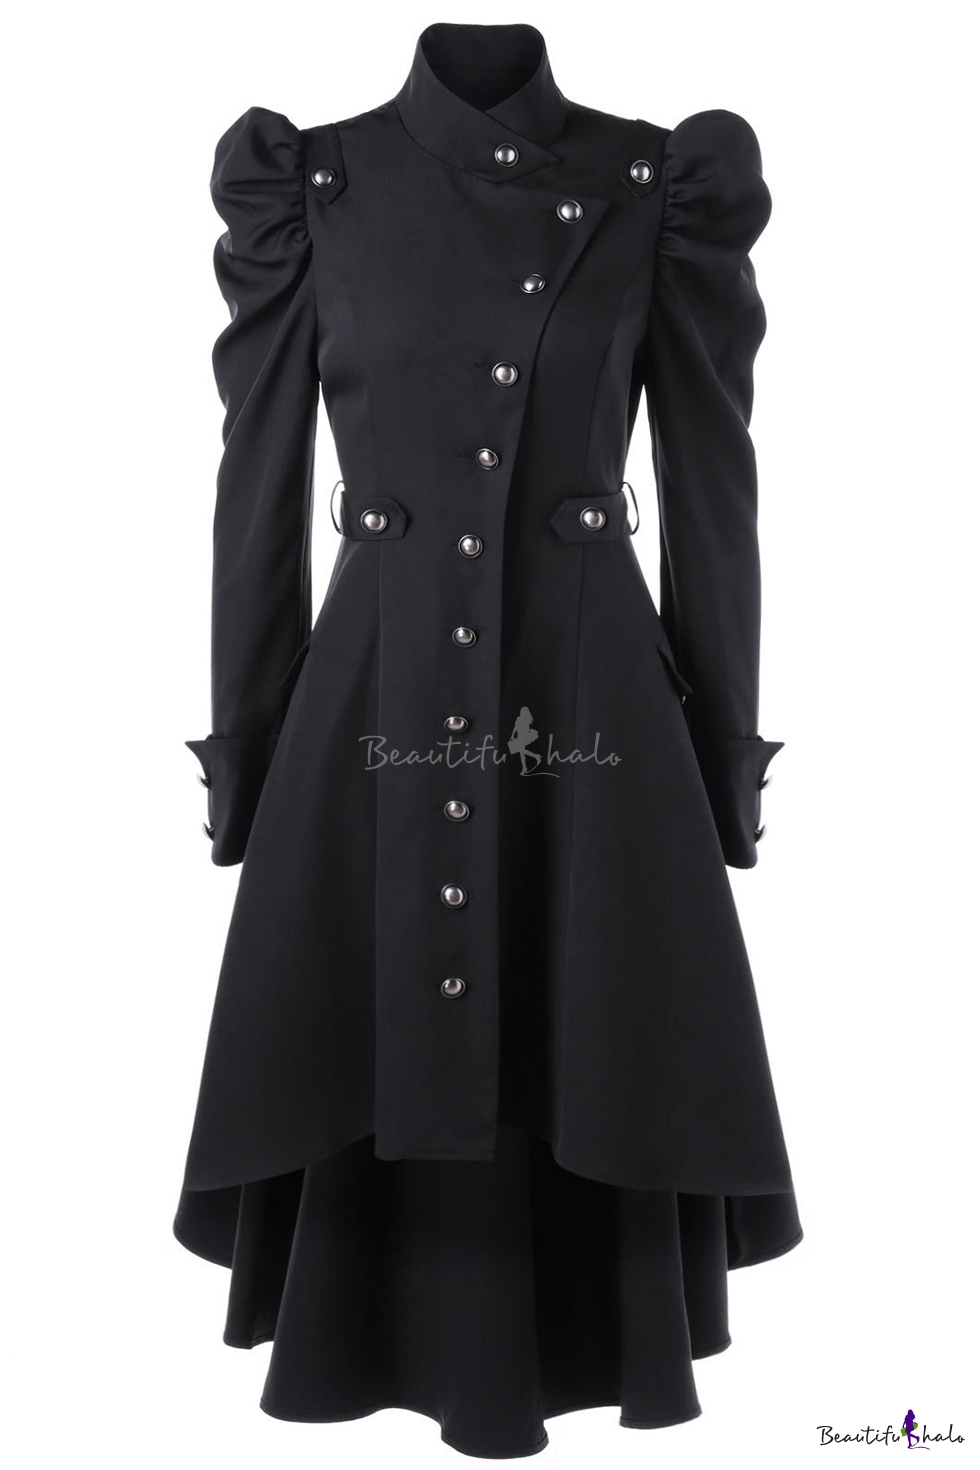 Incerto Questioni diplomatiche dolce  Womens Fashion Stand Collar Vintage Steampunk Long Coat Gothic Overcoat  Ladies Winter Retro Jacket Outwear - Beautifulhalo.com